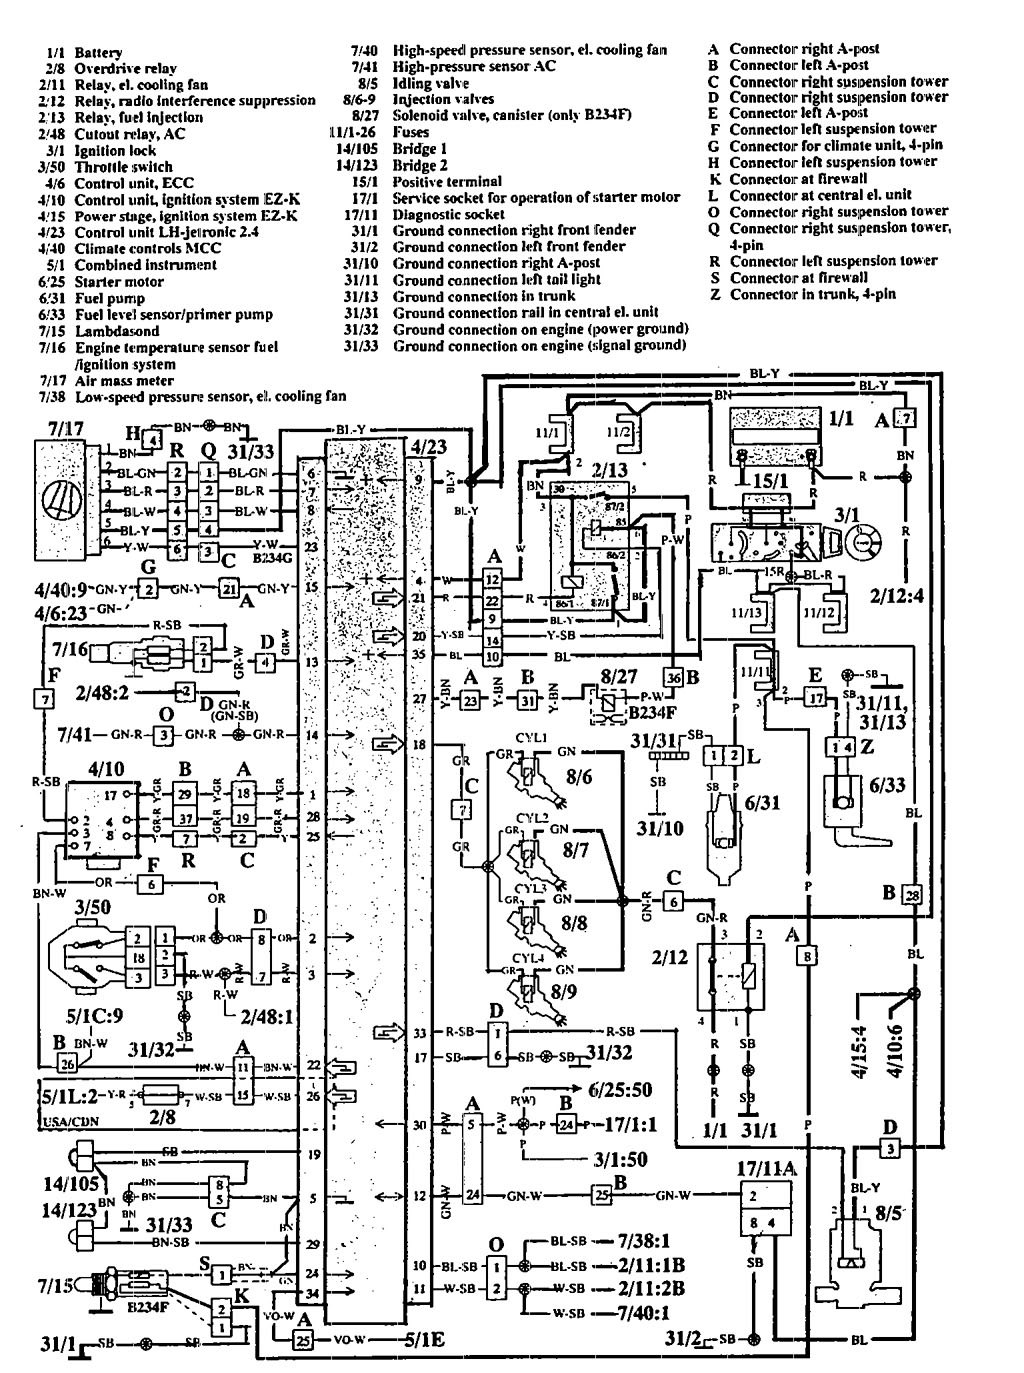 Wiring Diagram For 1994 Volvo 940 : Volvo wiring diagram  images